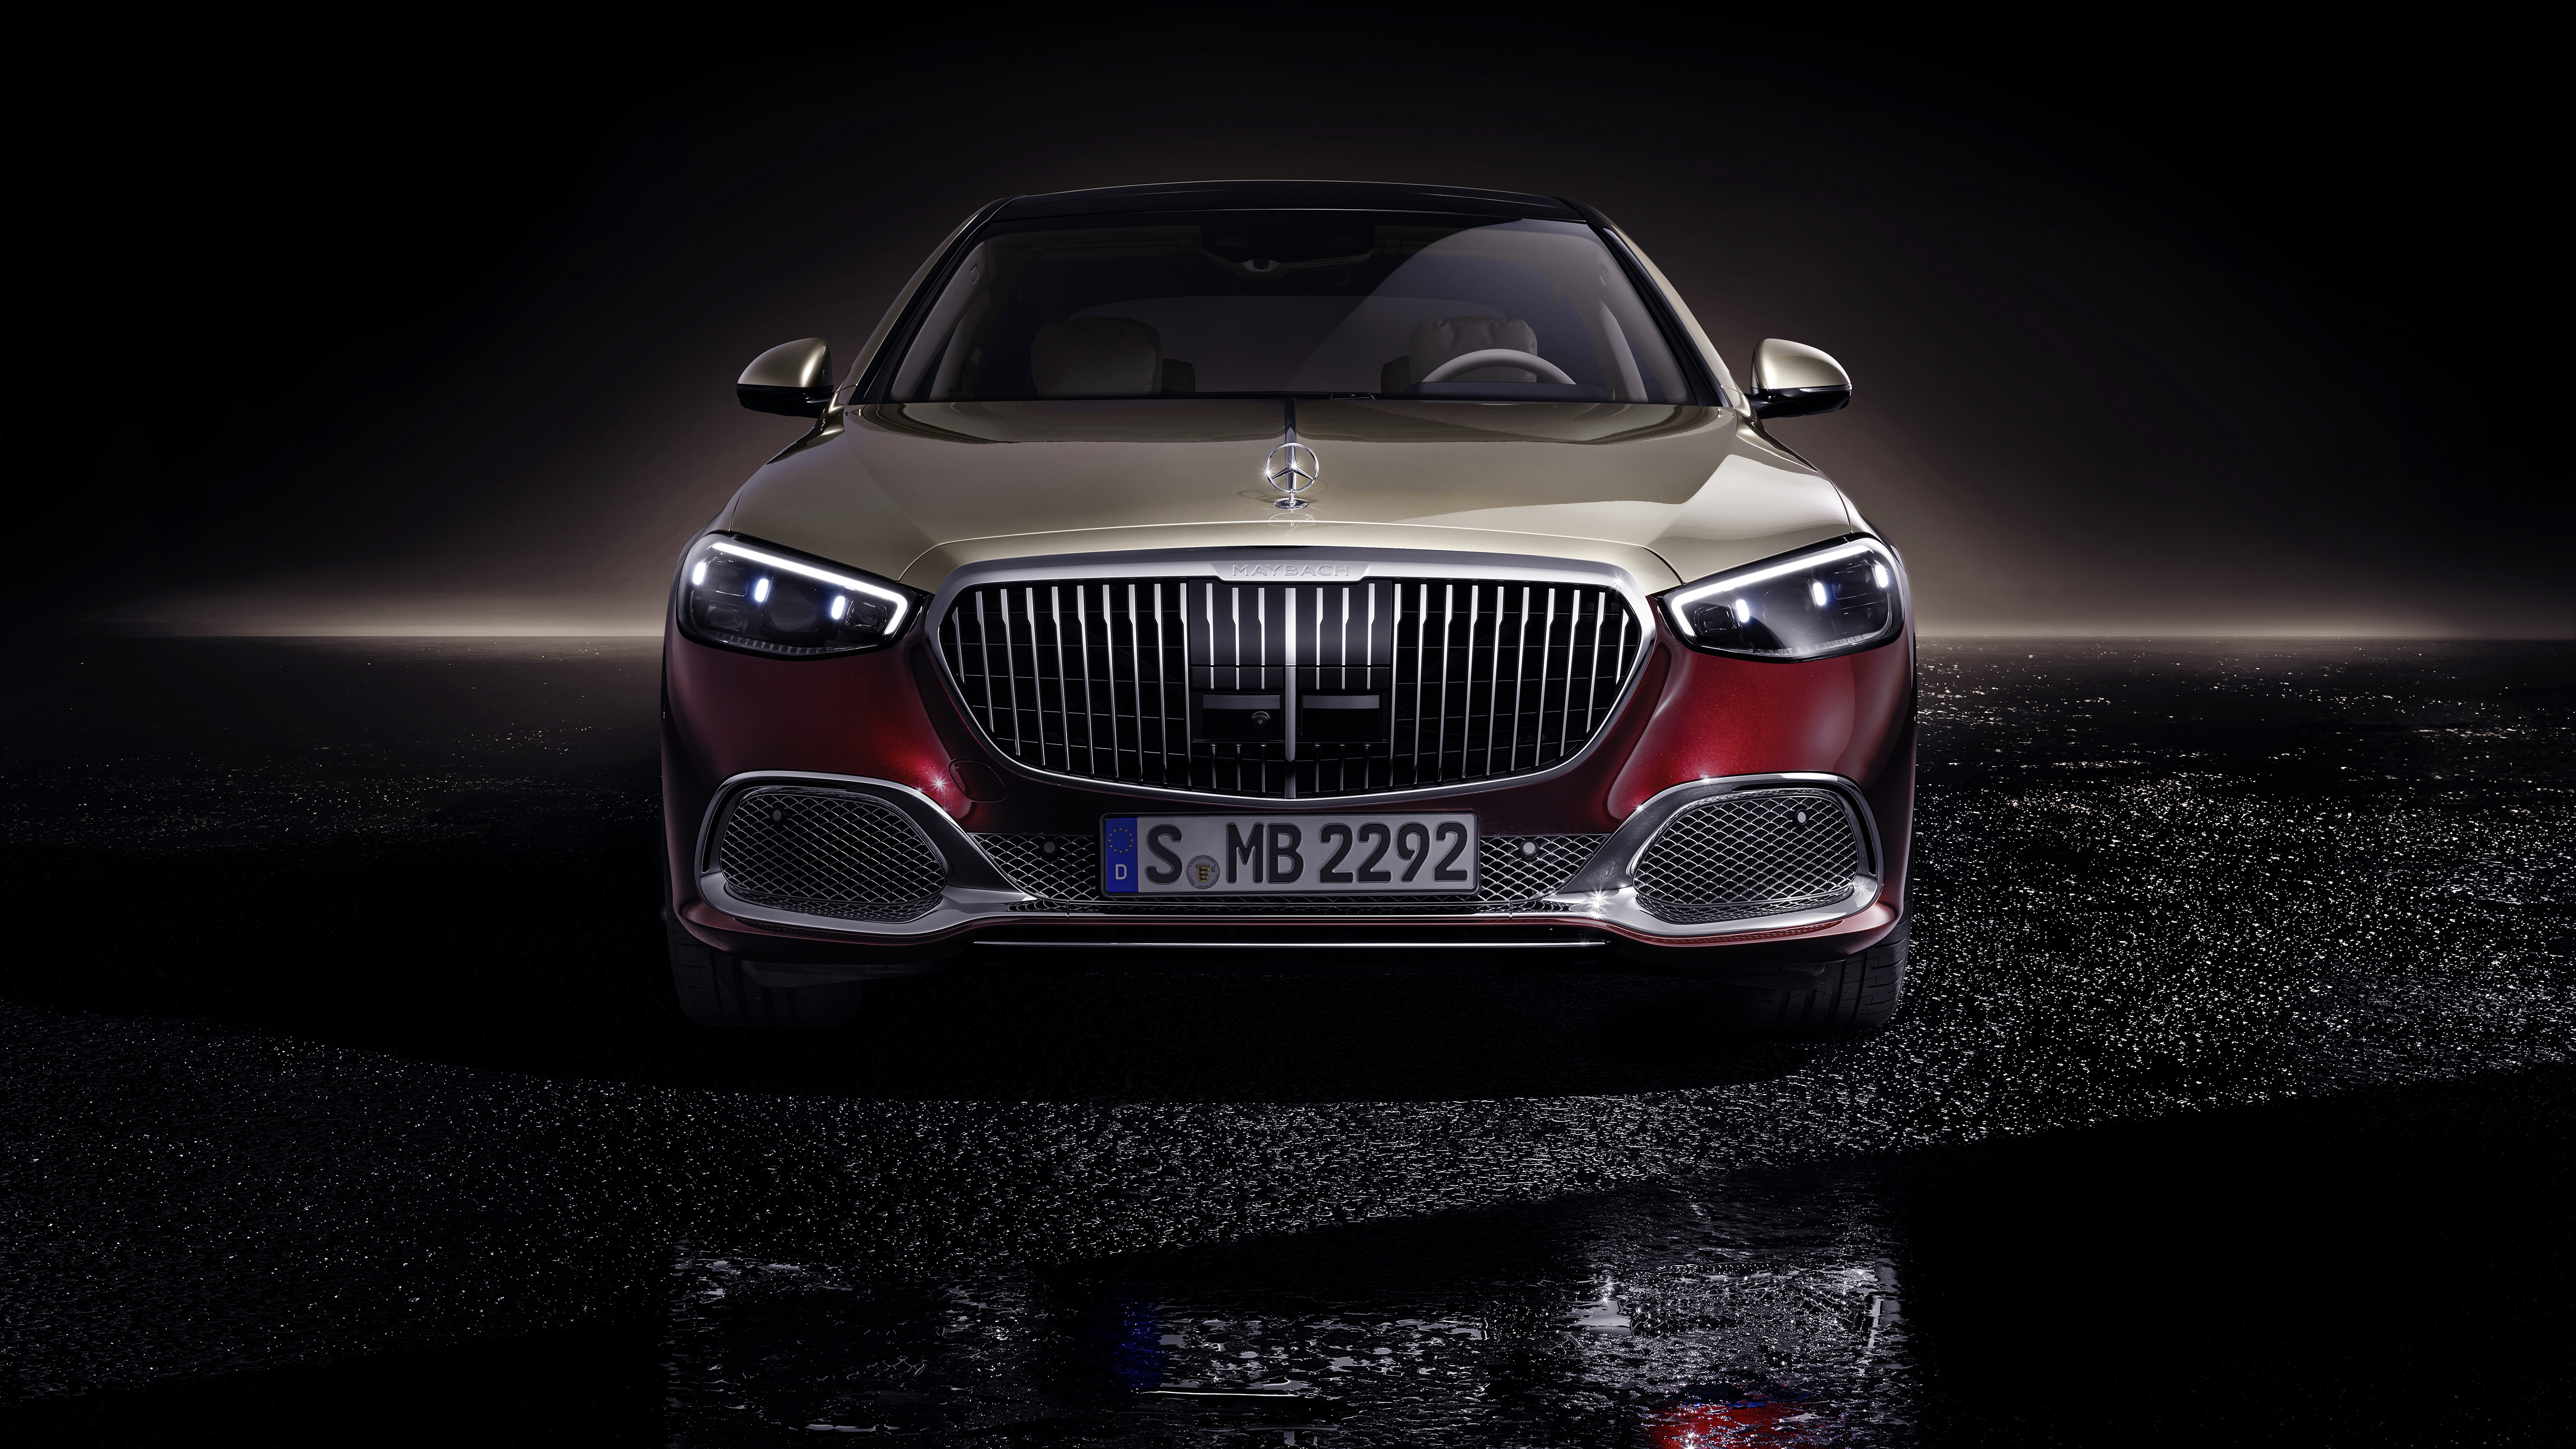 mercedes s class maybach 2020 4k 1608980001 - Mercedes S Class Maybach 2020 4k - Mercedes S Class Maybach 2020 4k wallpapers